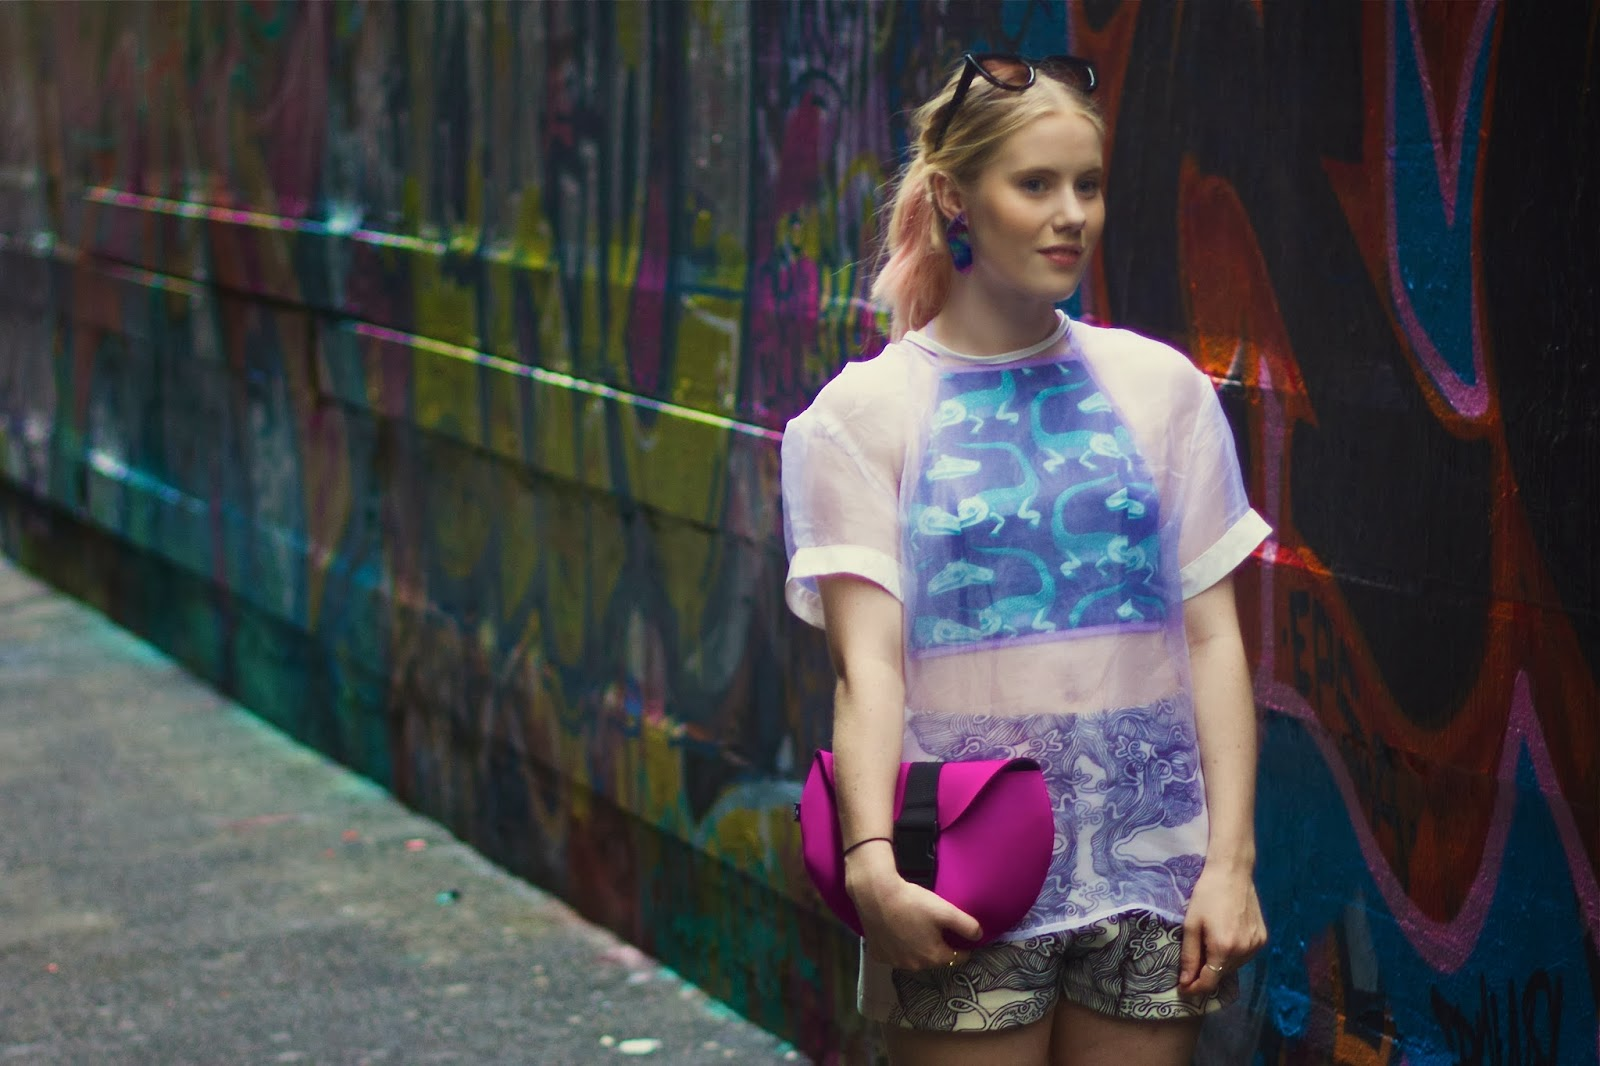 outsideiscolours, outside is colours, pip o'sullivan, witu pink bag, witu pink semi circle clutch, pink neoprene clutch, soot ink print shorts, soot ink print elroy shorts, symantha rose earrings, mossman sheer silk top, melbourne union lane, fashion blogger